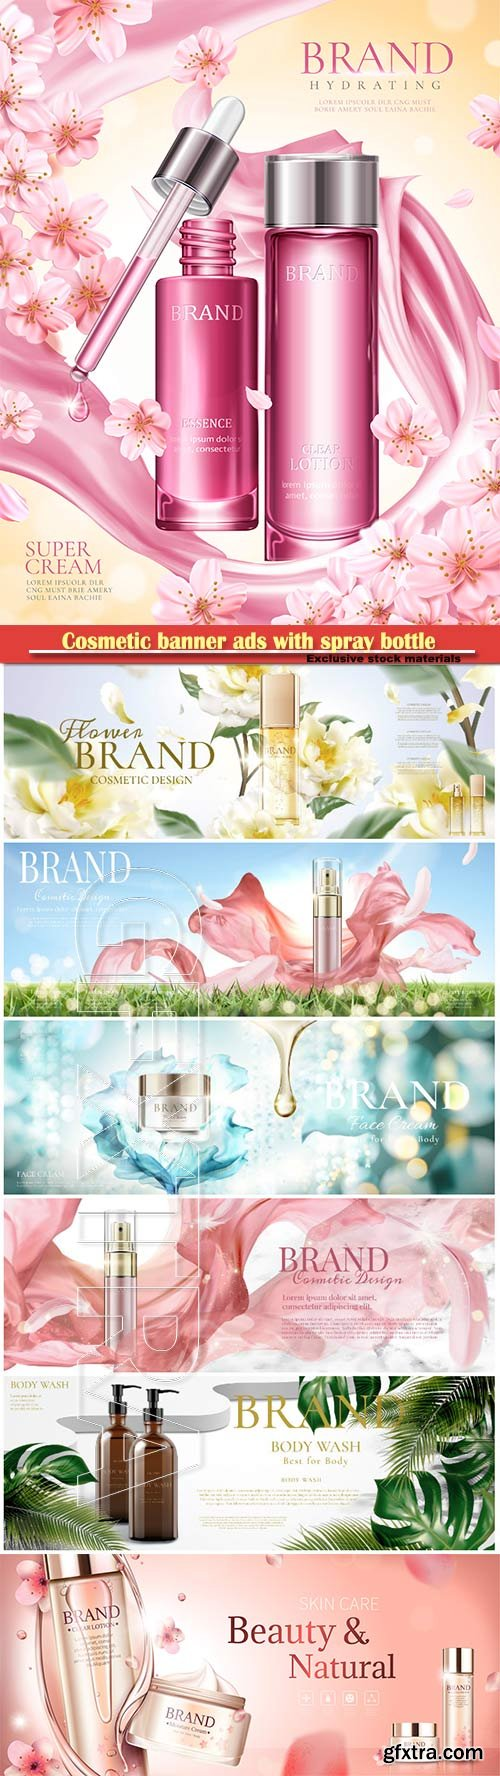 Cosmetic banner ads with spray bottle in 3d illustration vector illustration